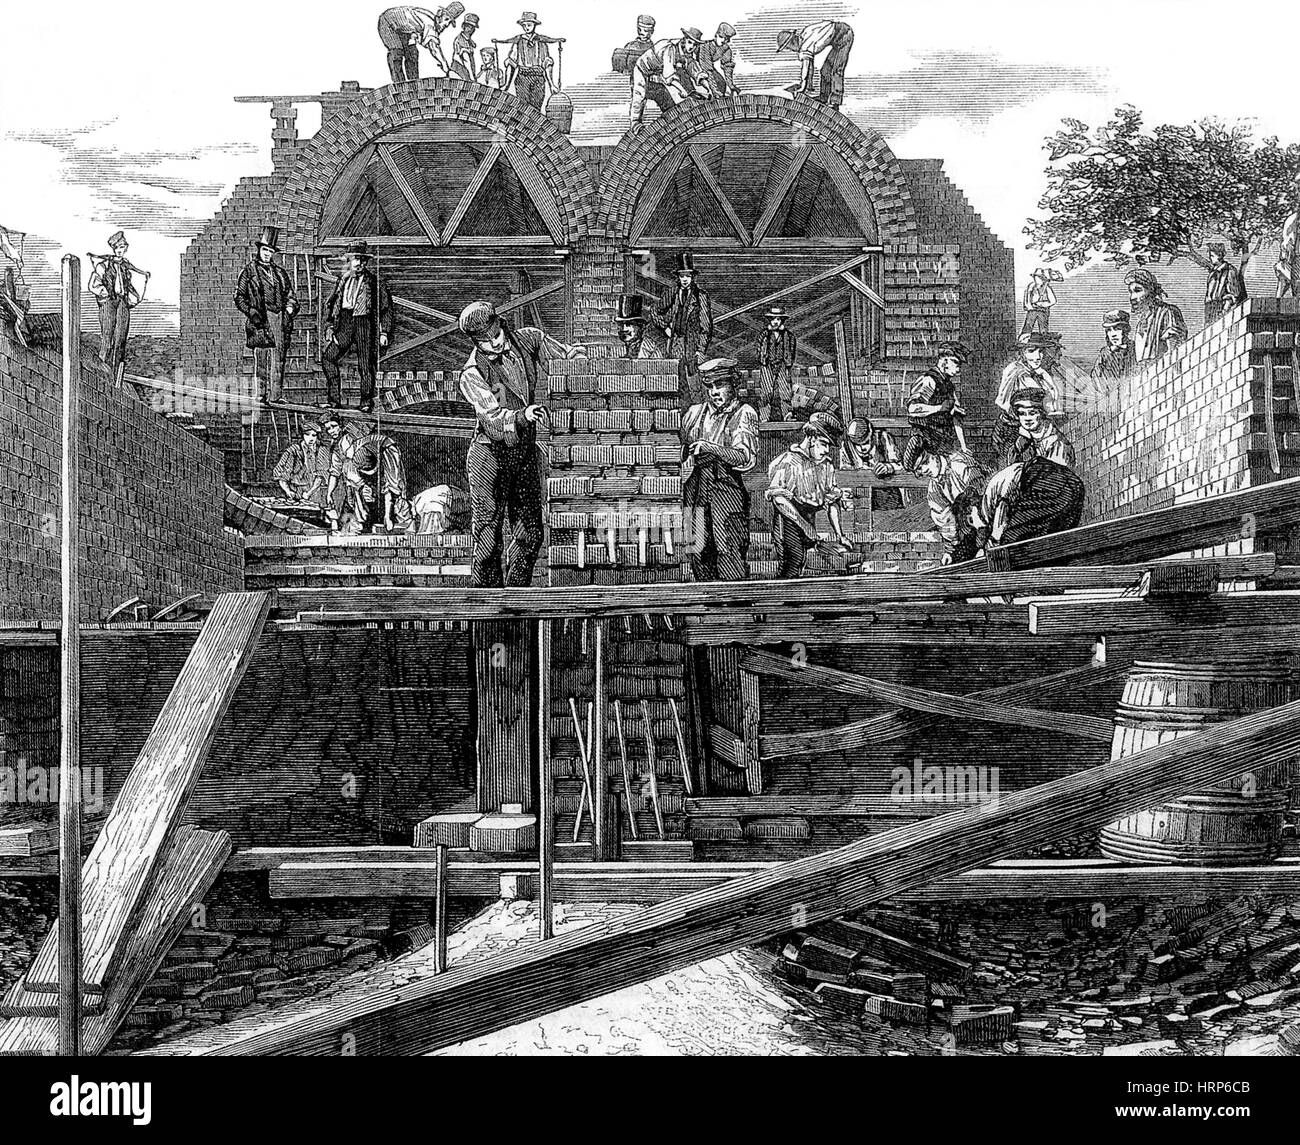 London Sewerage System Construction, 1859 - Stock Image